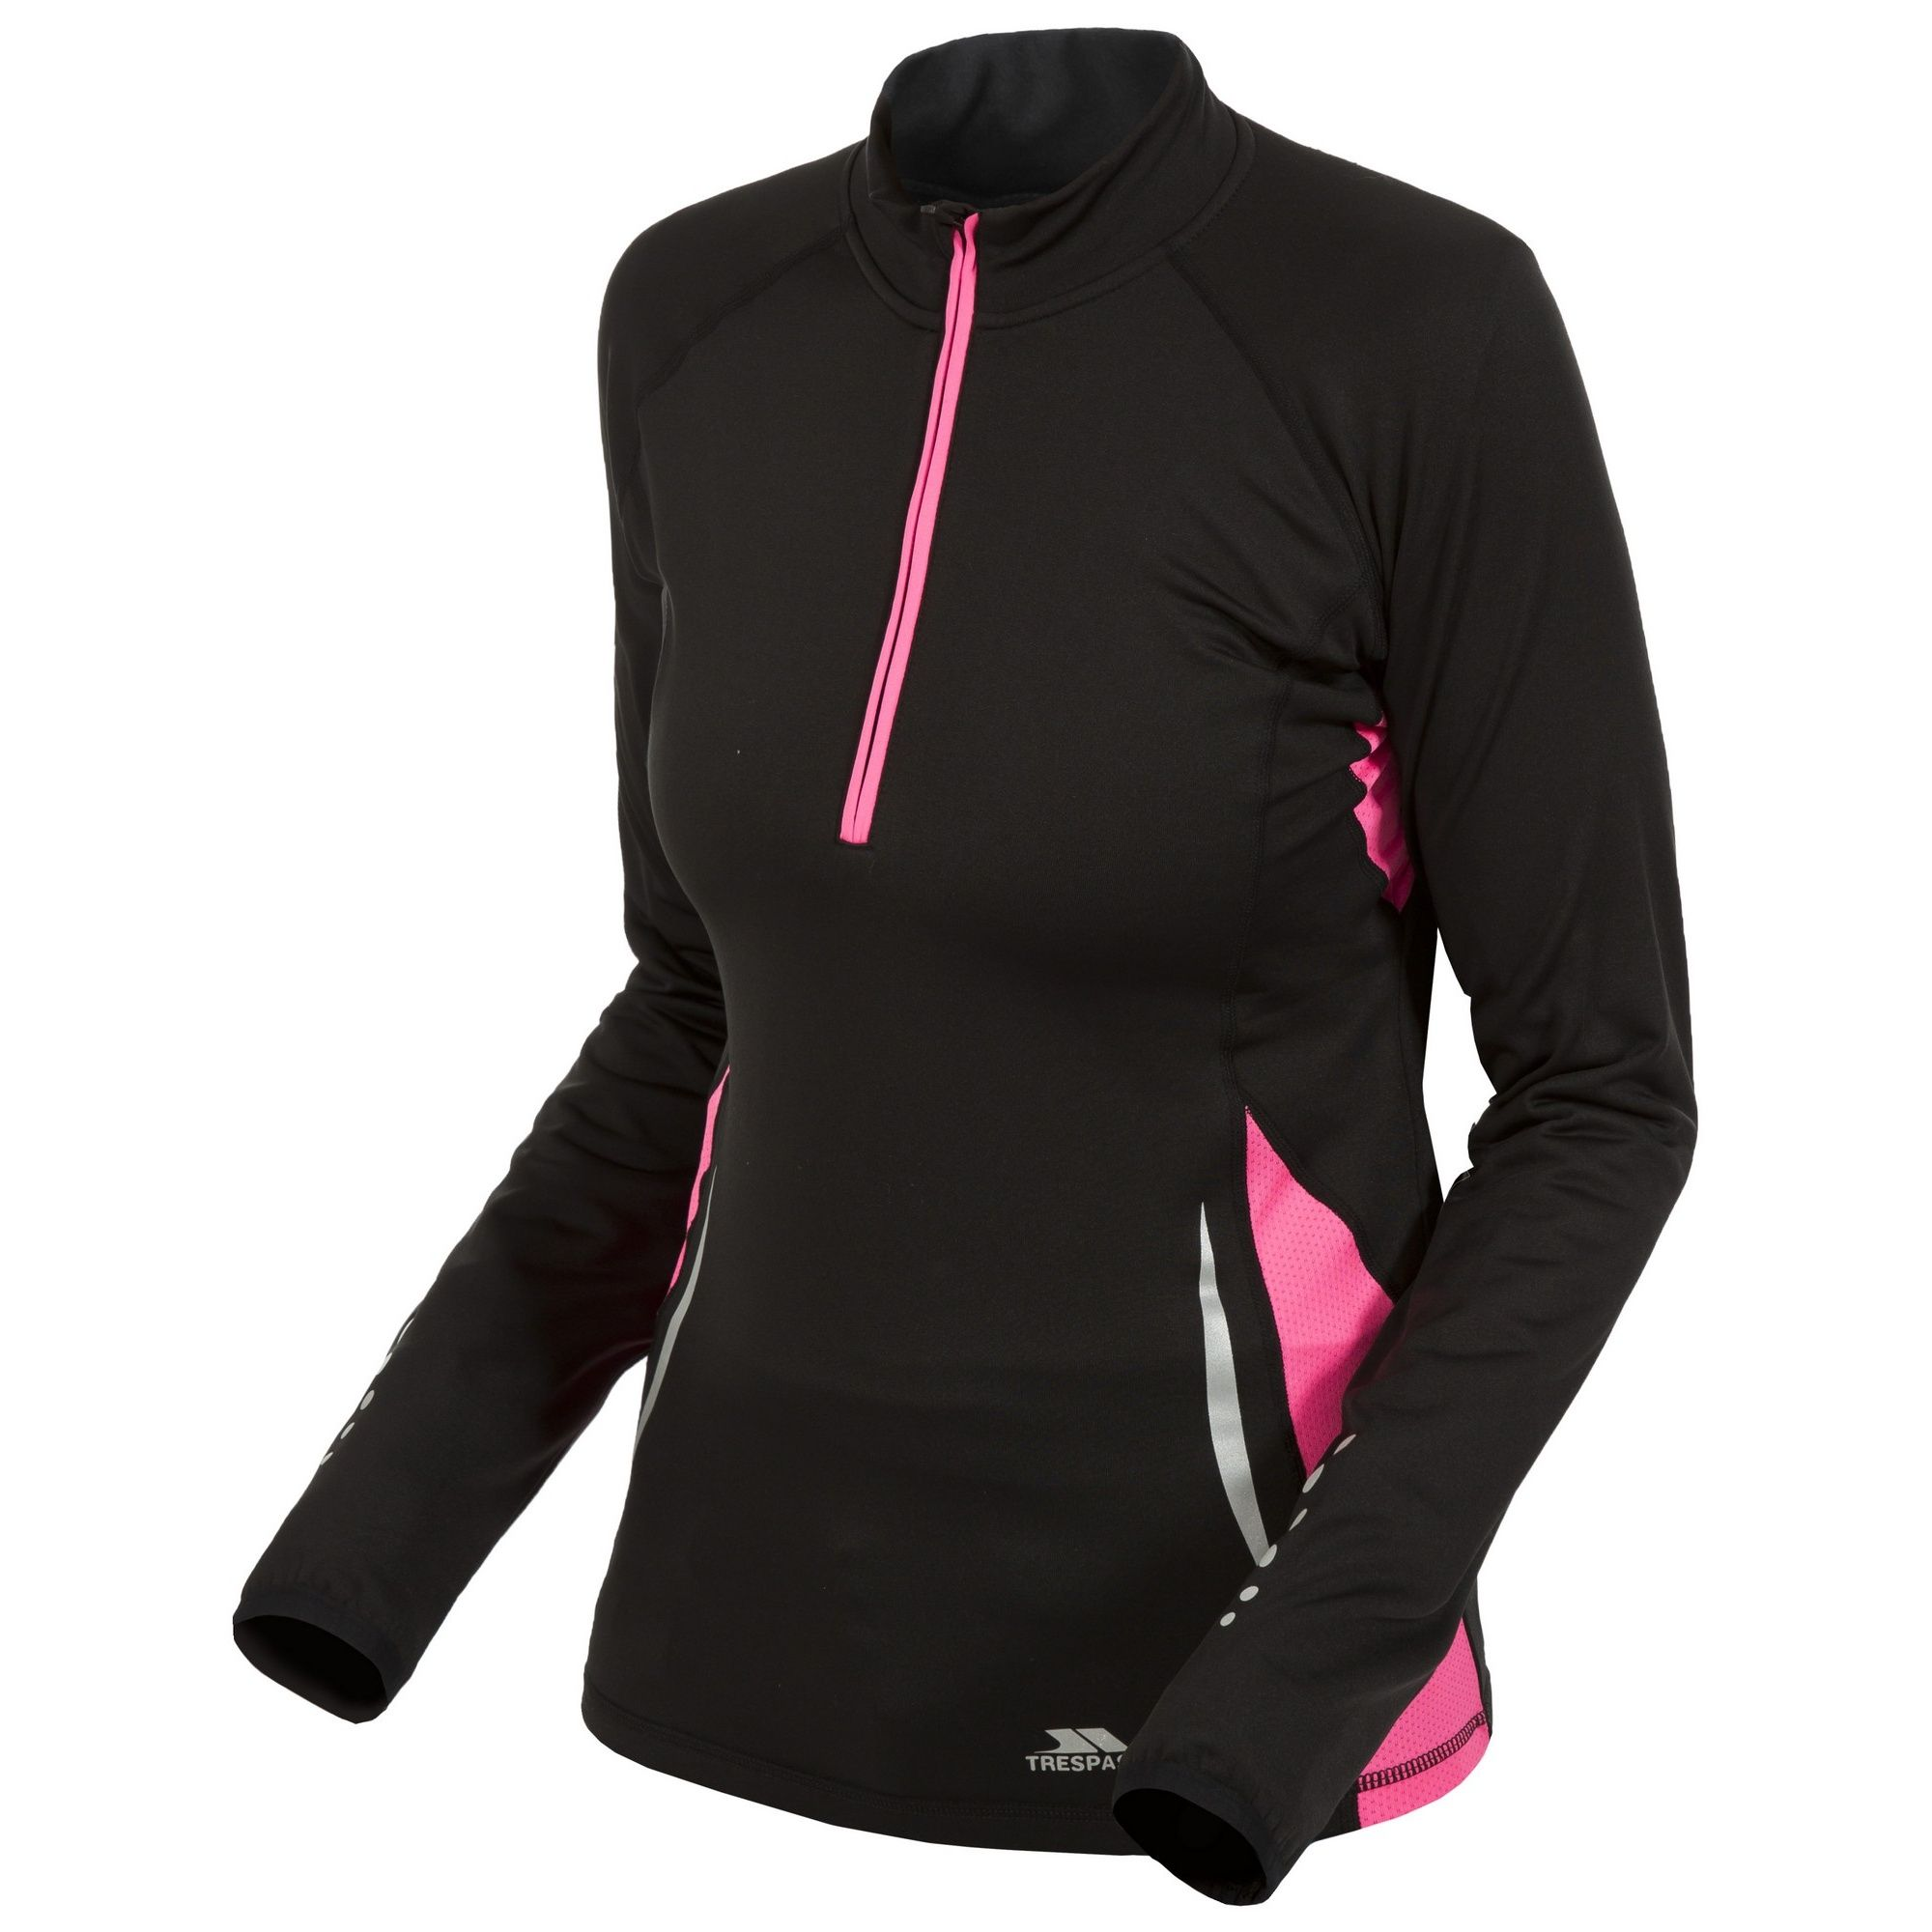 Trespass Womens/Ladies Persin Long Sleeve Active Top